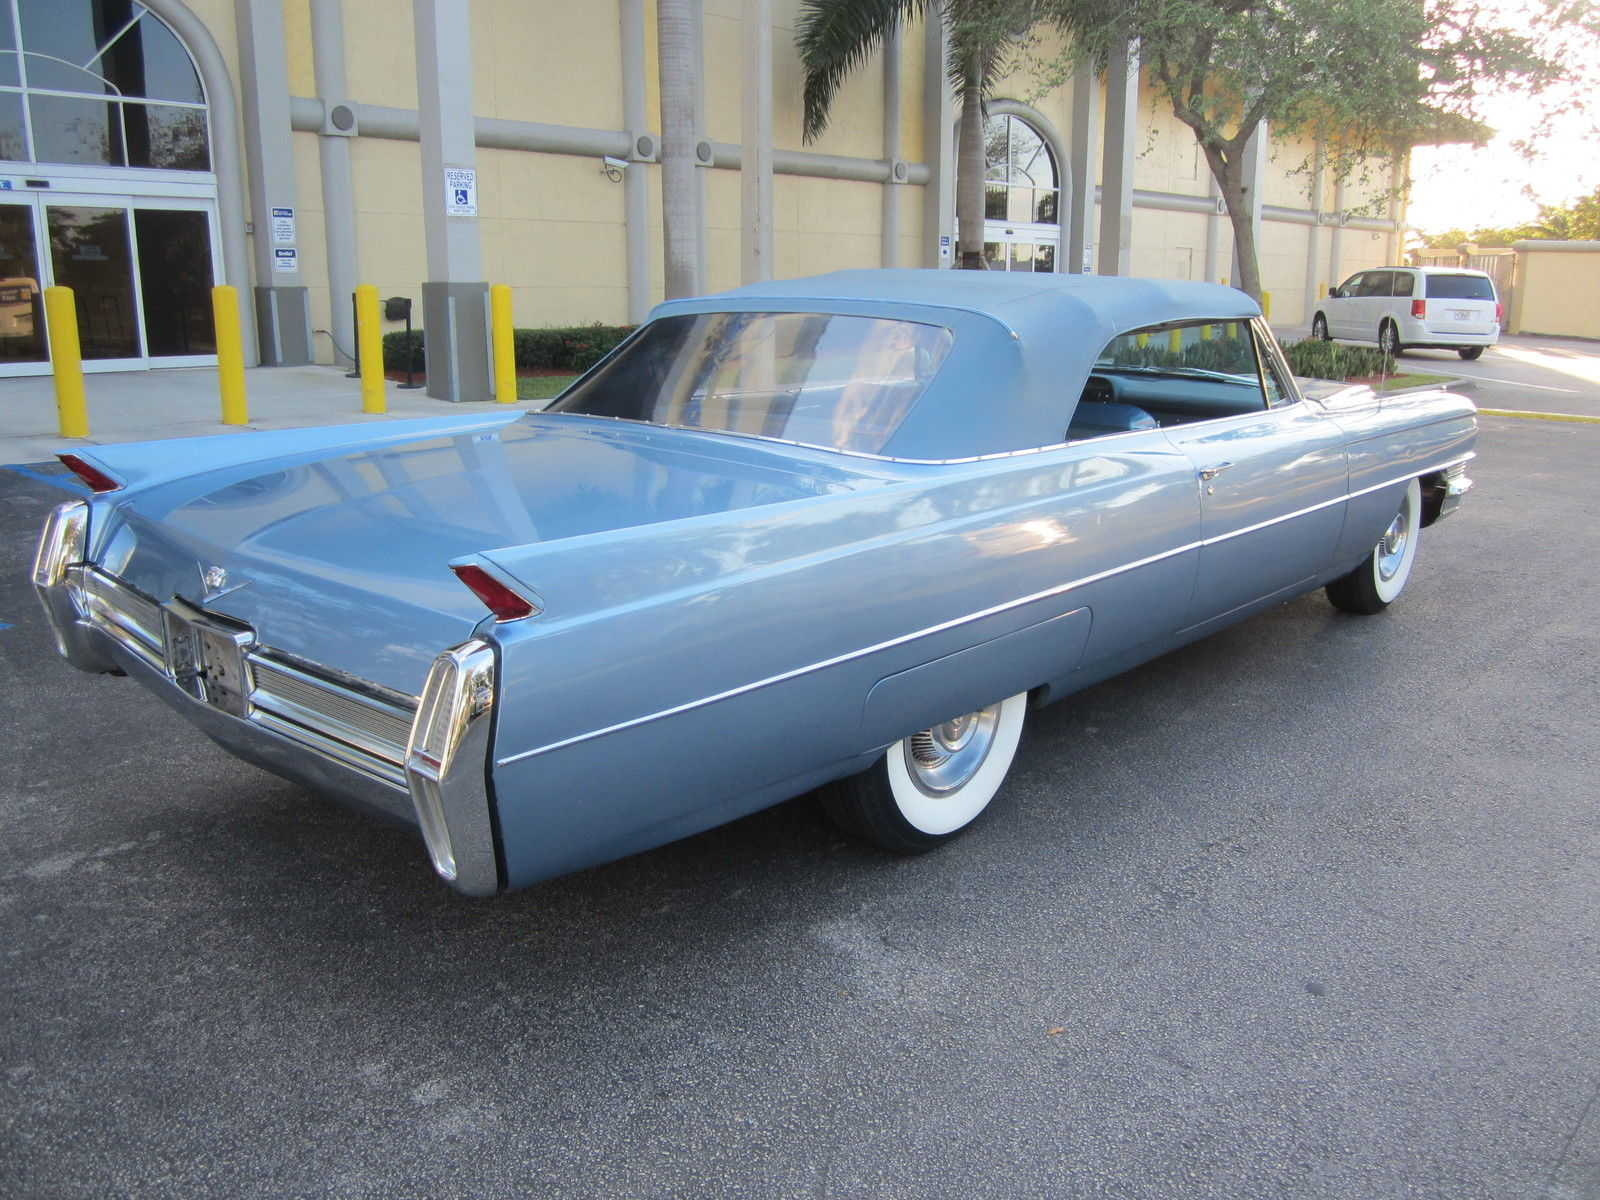 Best Car Transport Companies >> 1964 CADILLAC DEVILLE CONVERTIBLE MINT RUST FREE FLORIDA CAR LIKE NEW MAKE OFFER - Classic ...